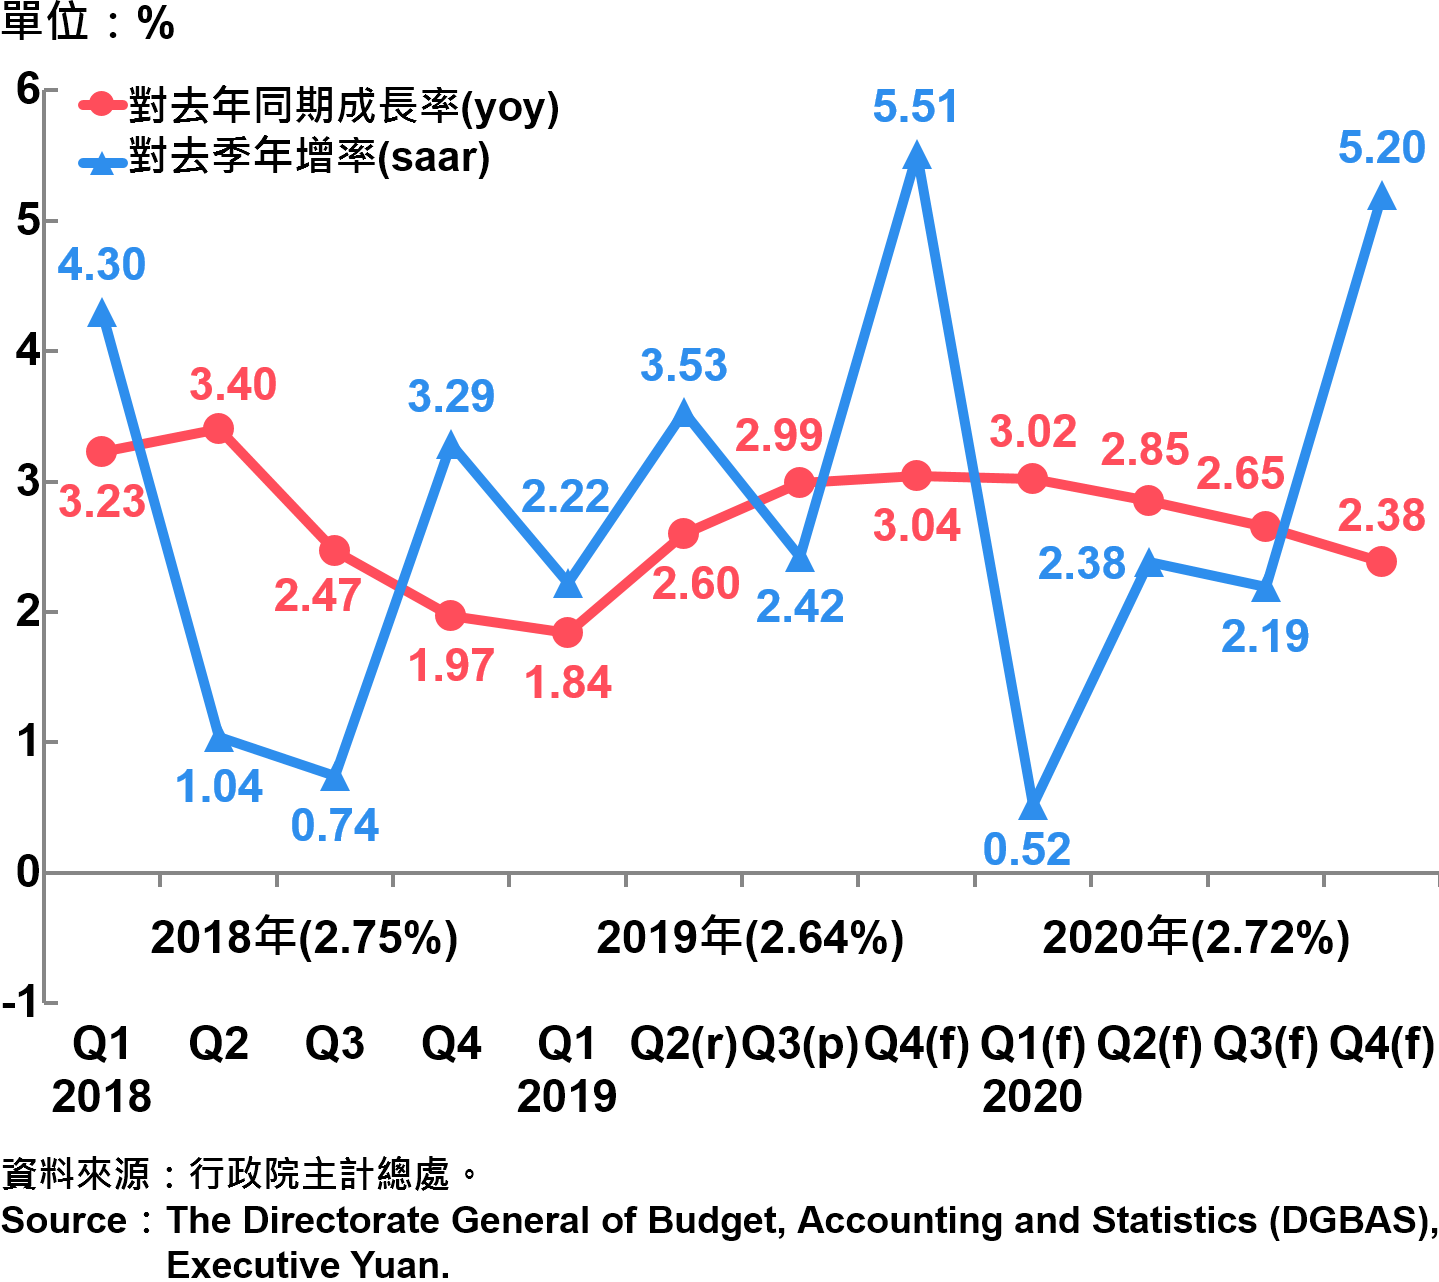 臺灣經濟成長率 Growth Rate of Real GDP in Taiwan